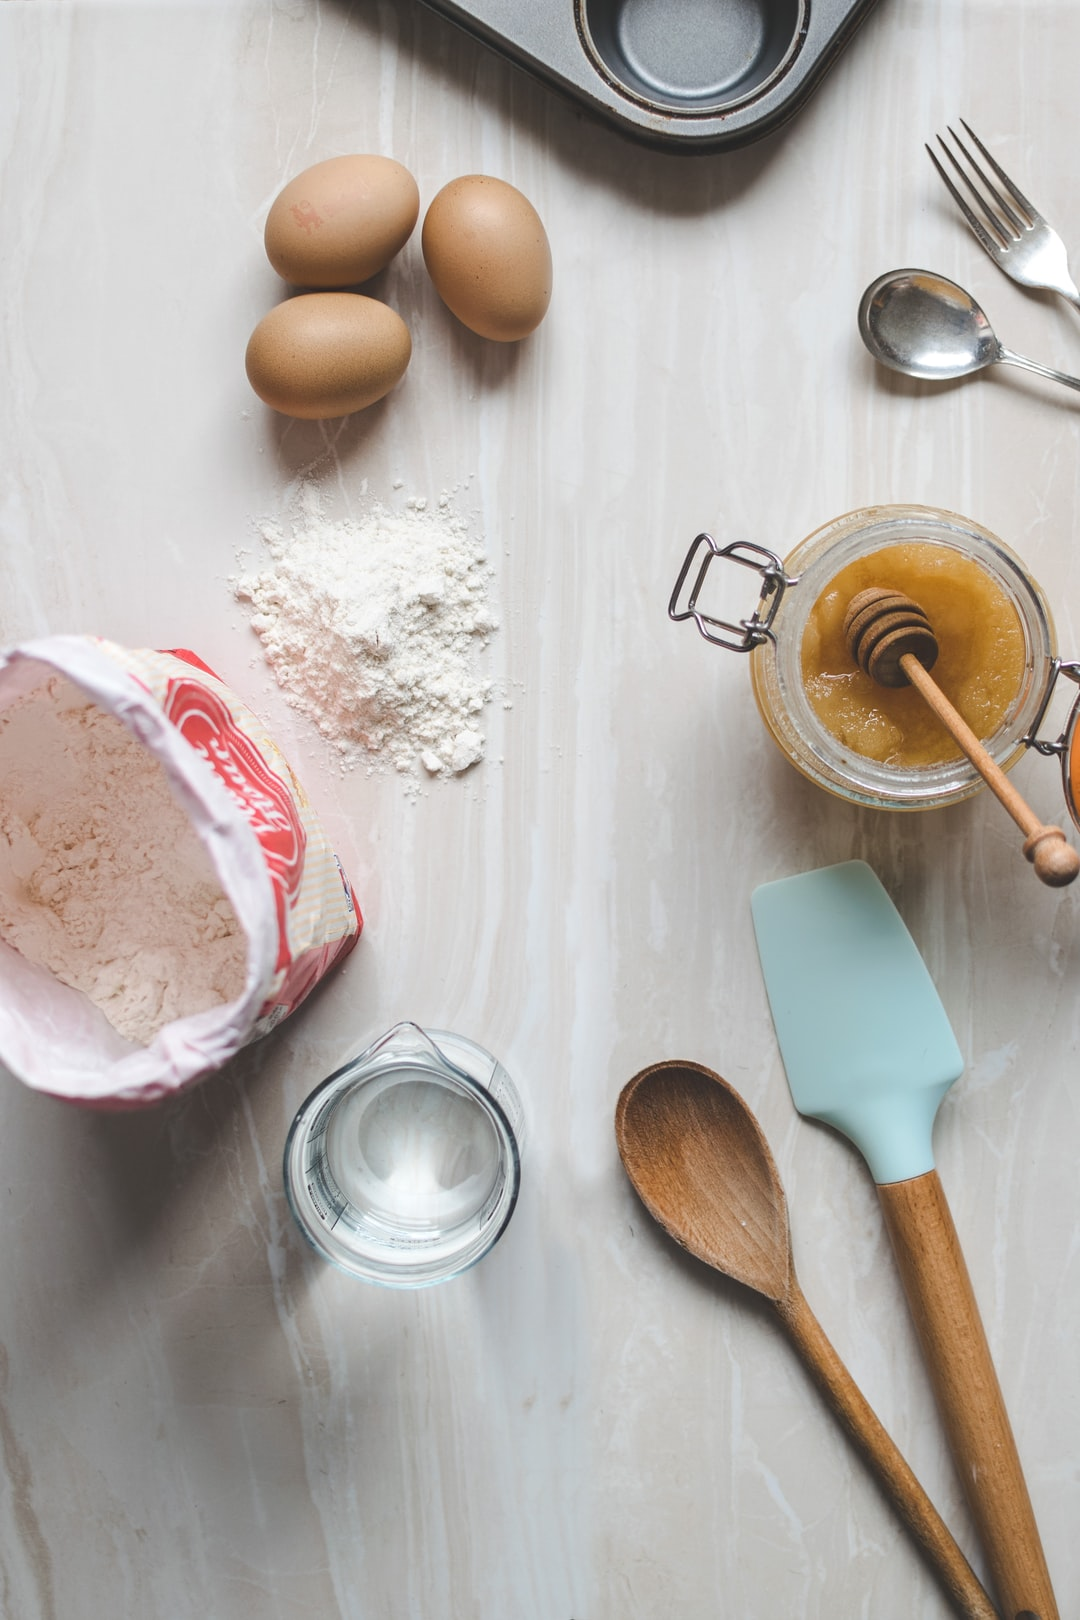 27 Baking Pictures Download Free Images On Unsplash